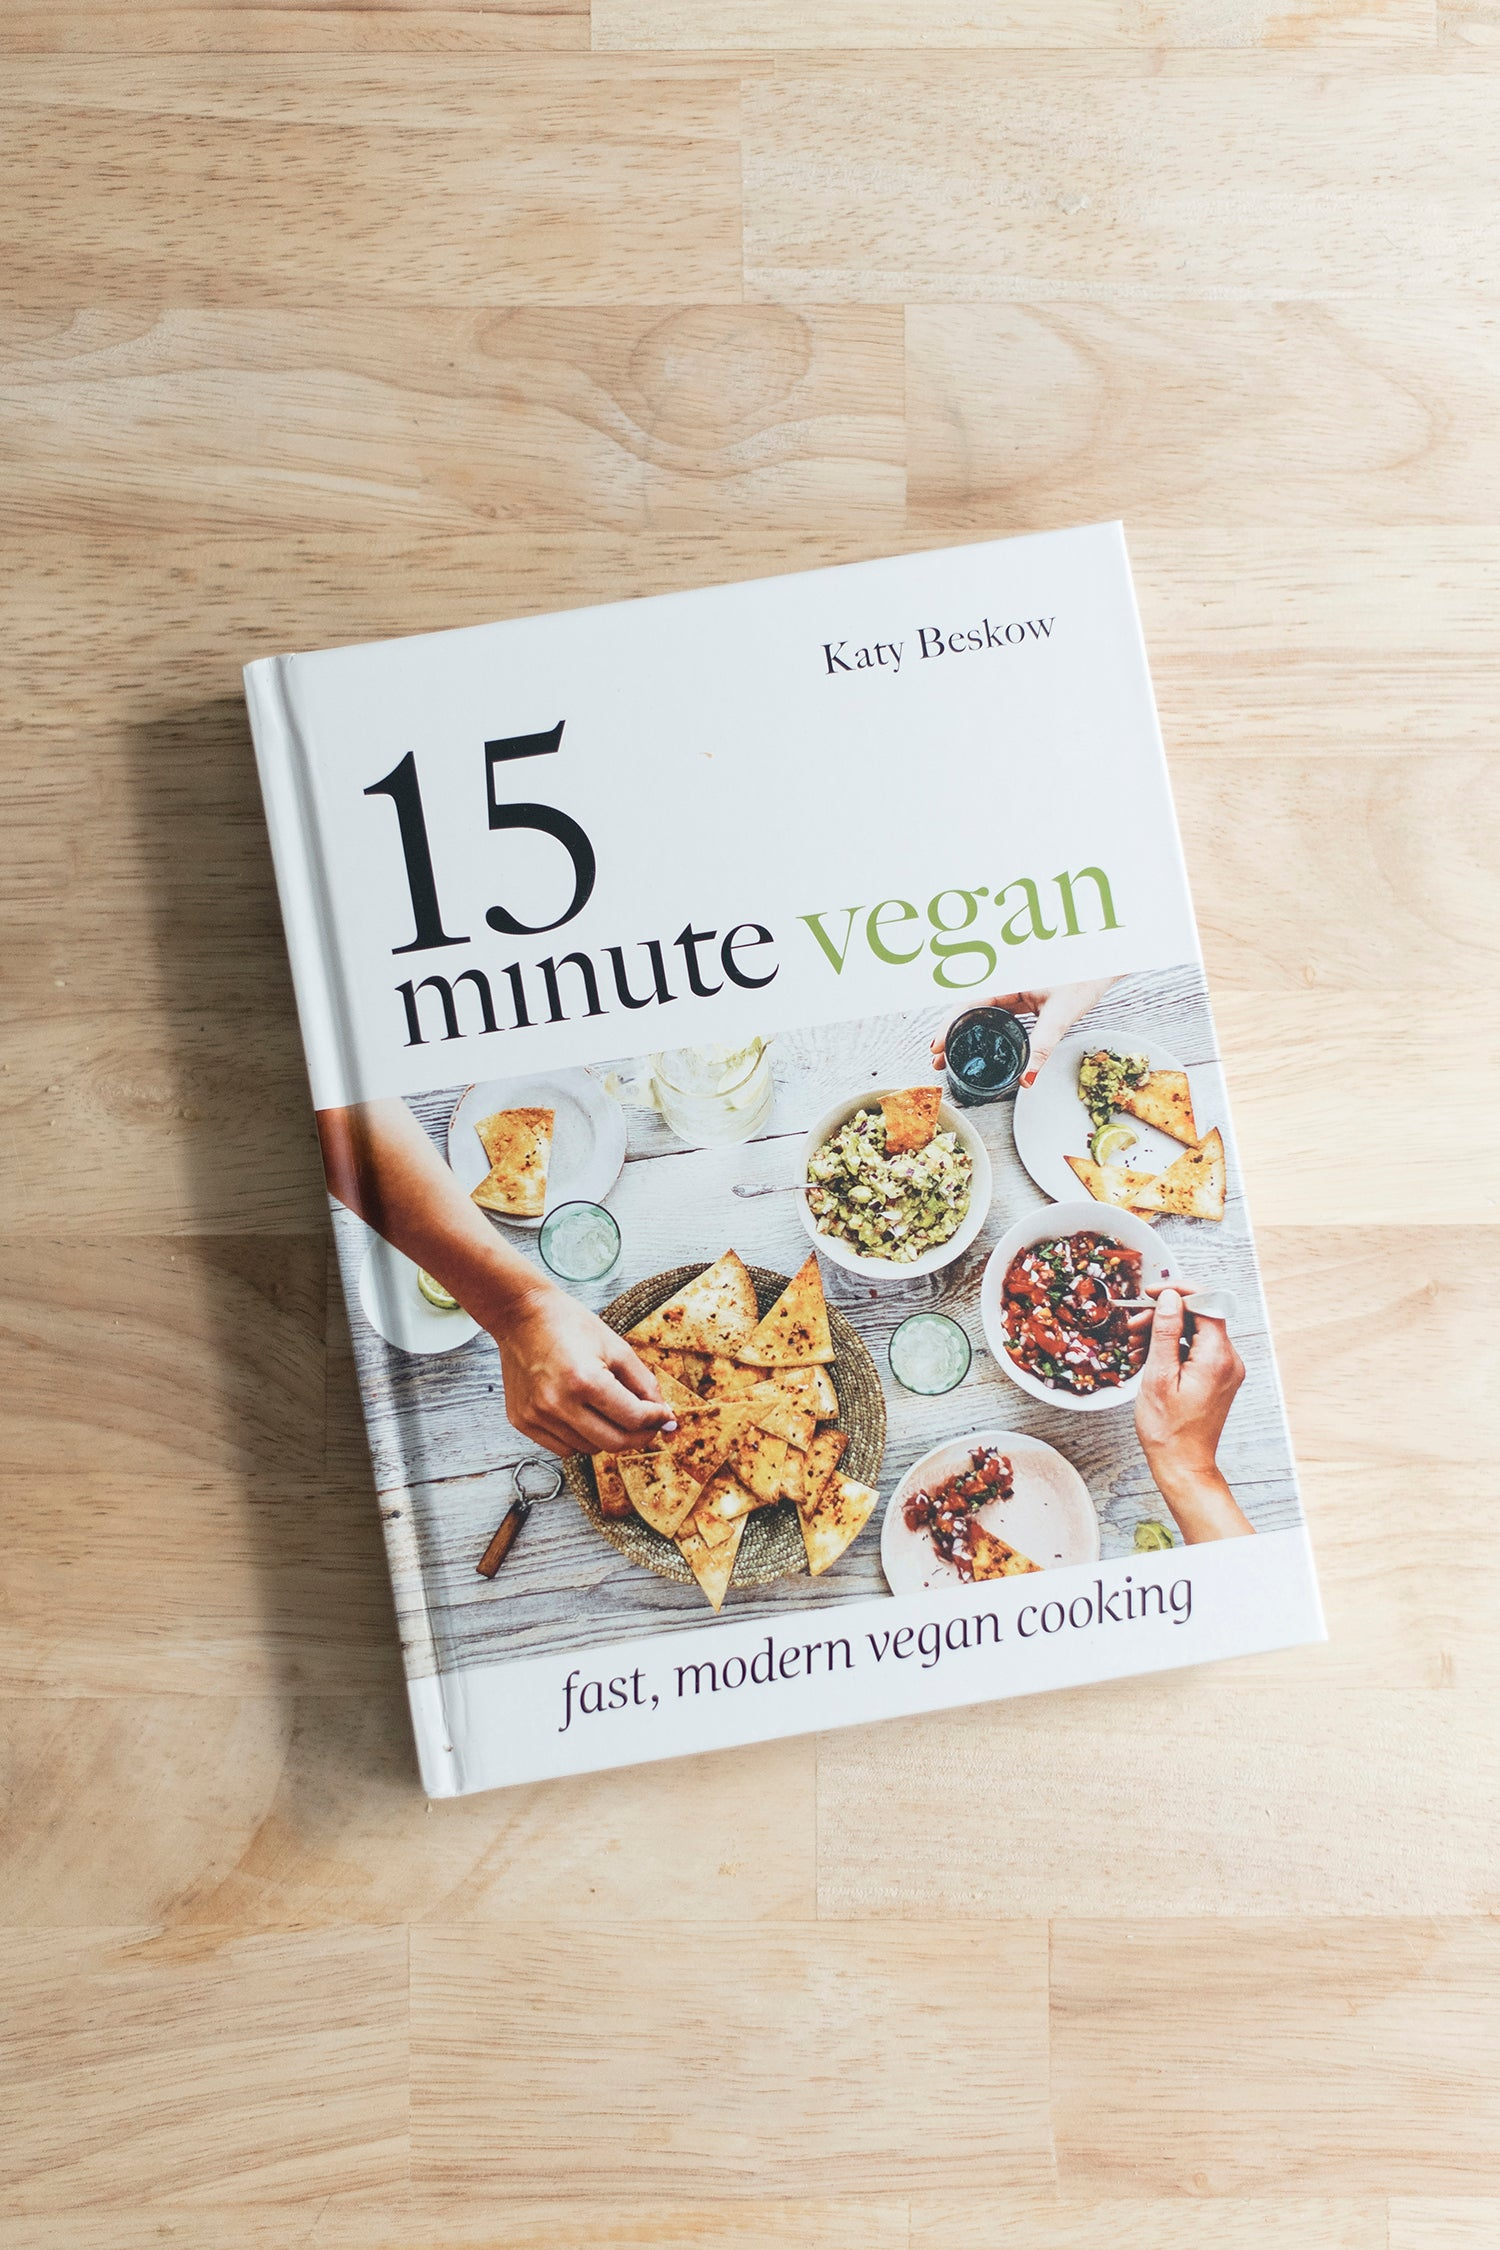 15 minute vegan book review